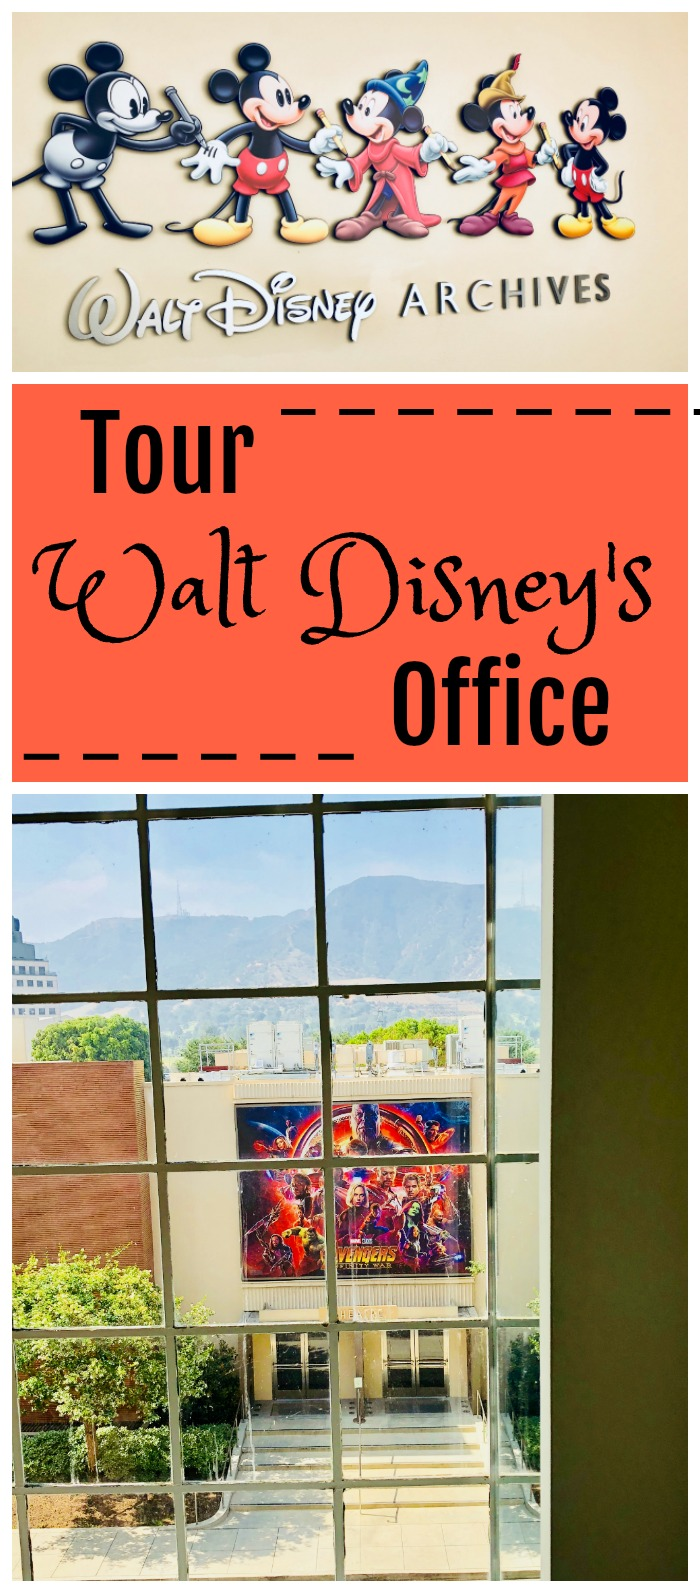 Tour Walt Disney's Office